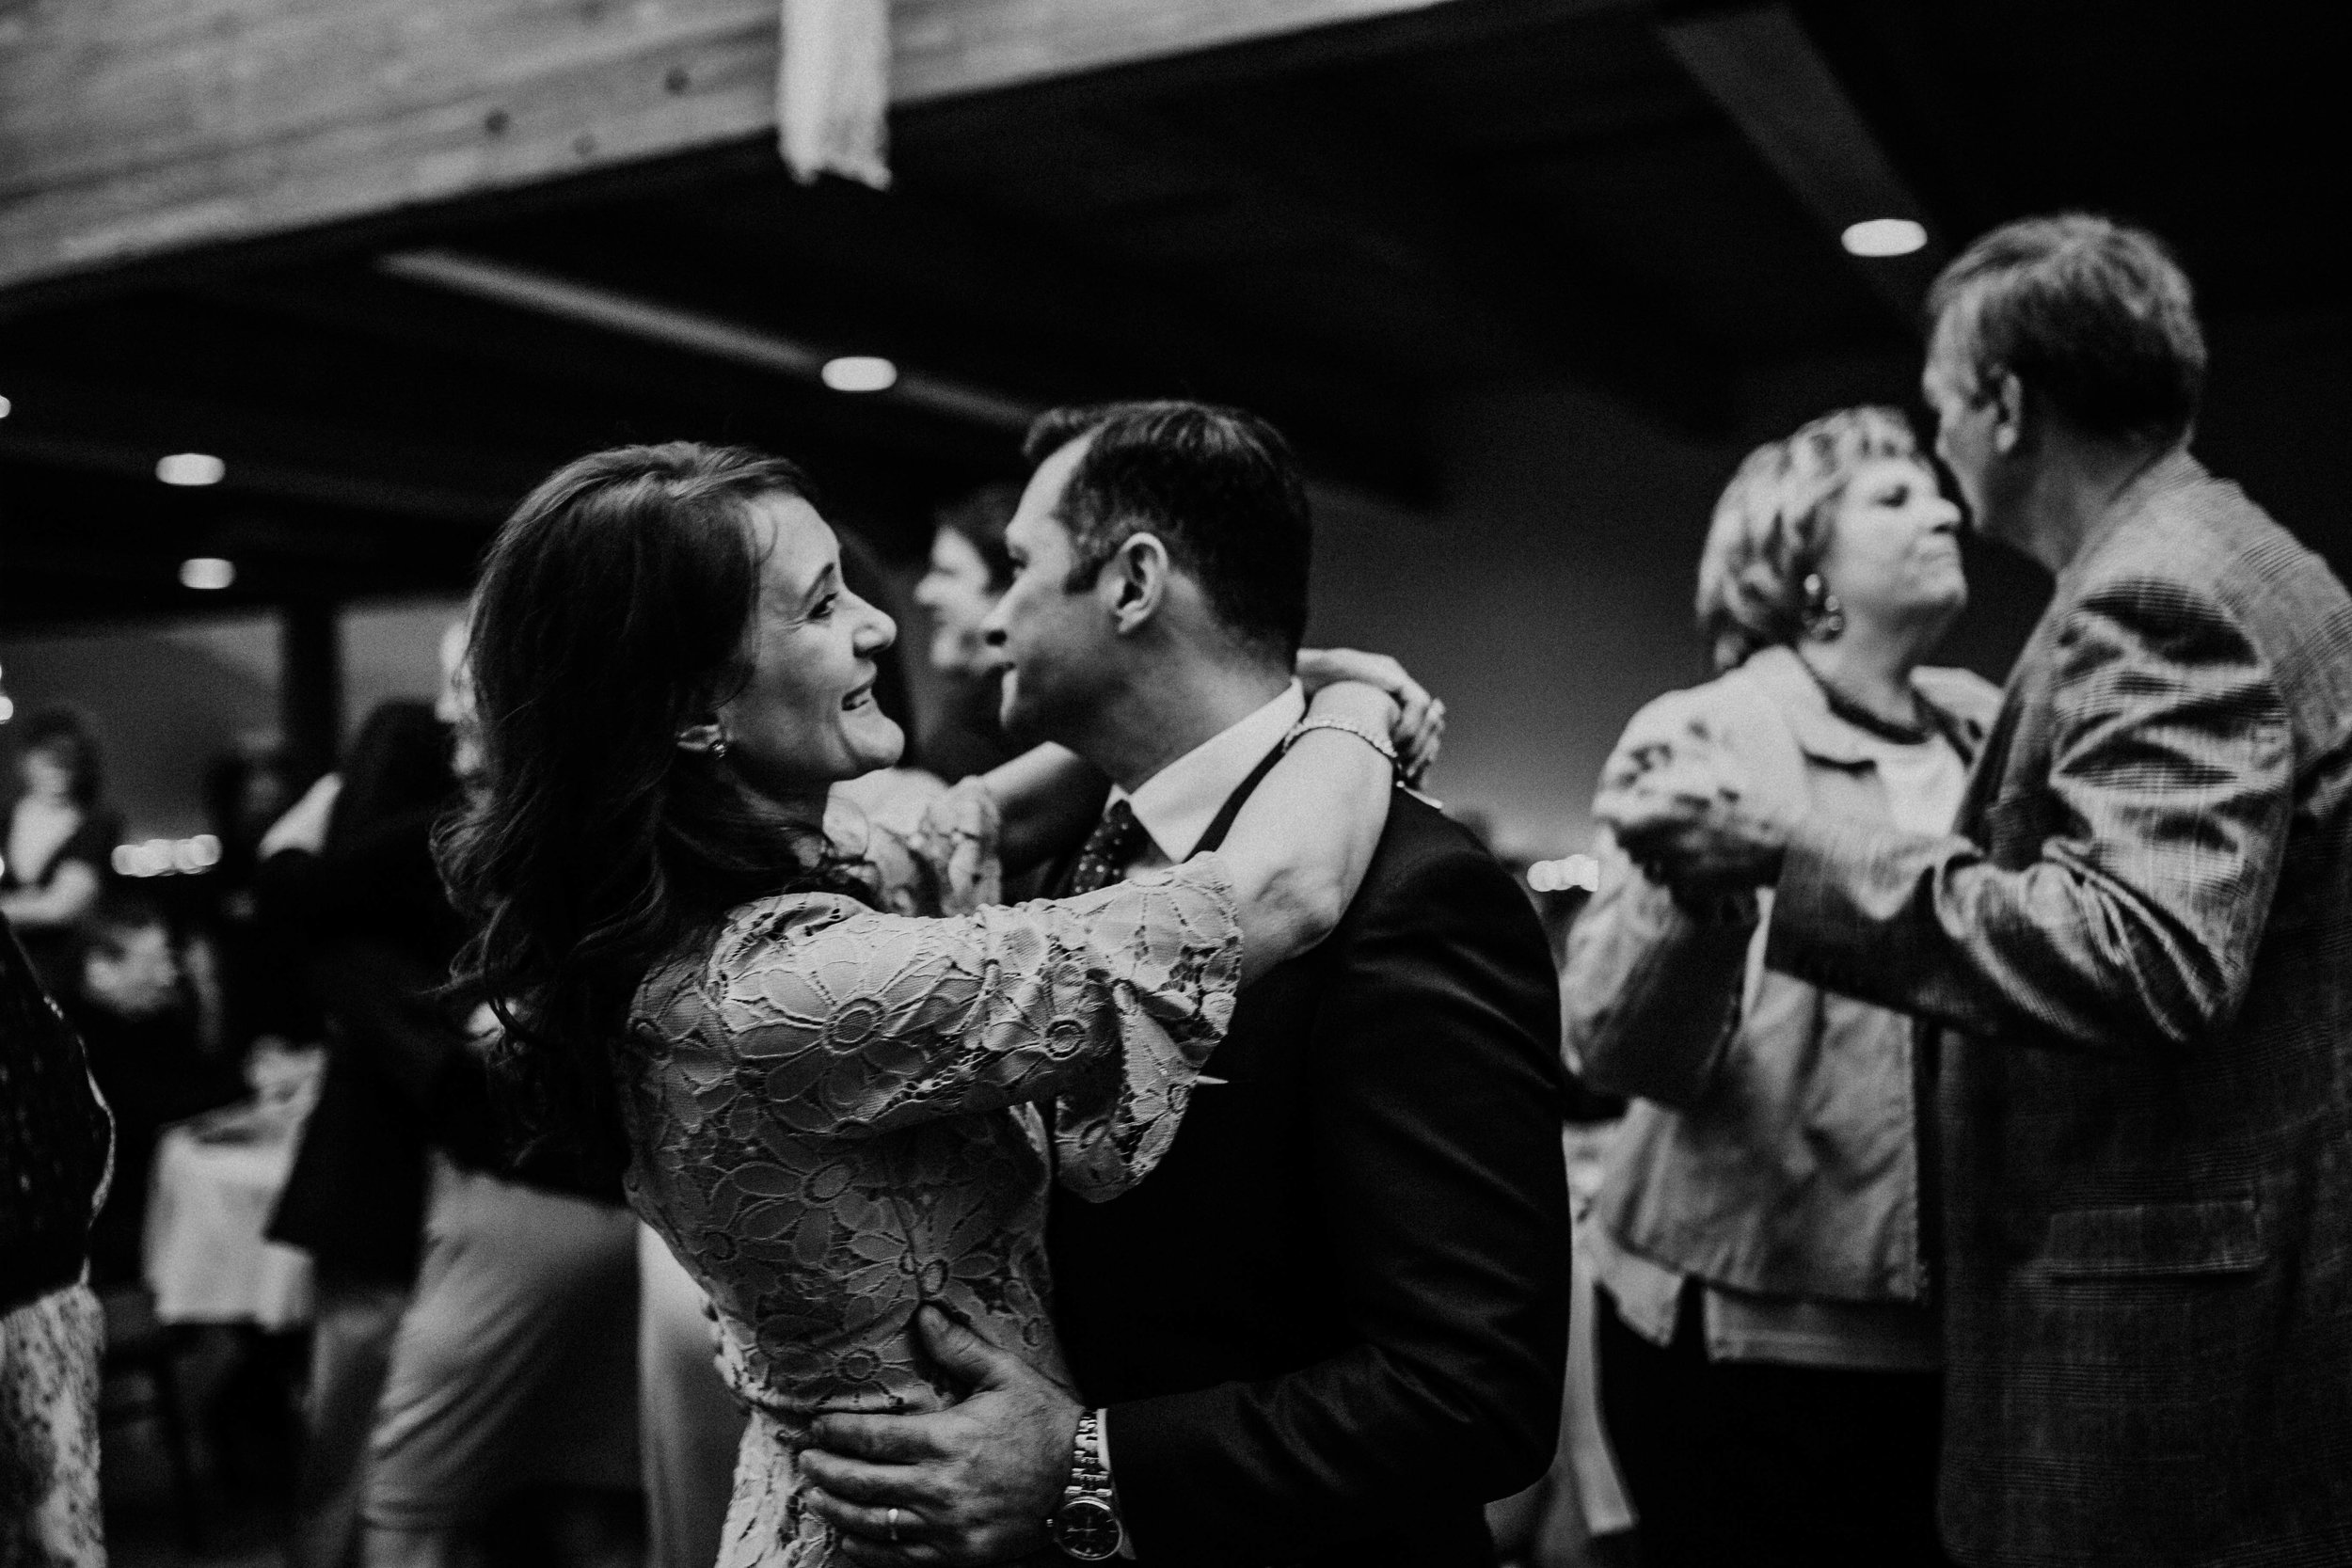 Bert & Lauren's North Kansas City Spring Wedding | Hannahill Photography | Raleigh Durham Photographer | North Carolina Wedding Photography | Family Photographer | Wedding photographer | The brides aunt and uncle share a dance at the reception